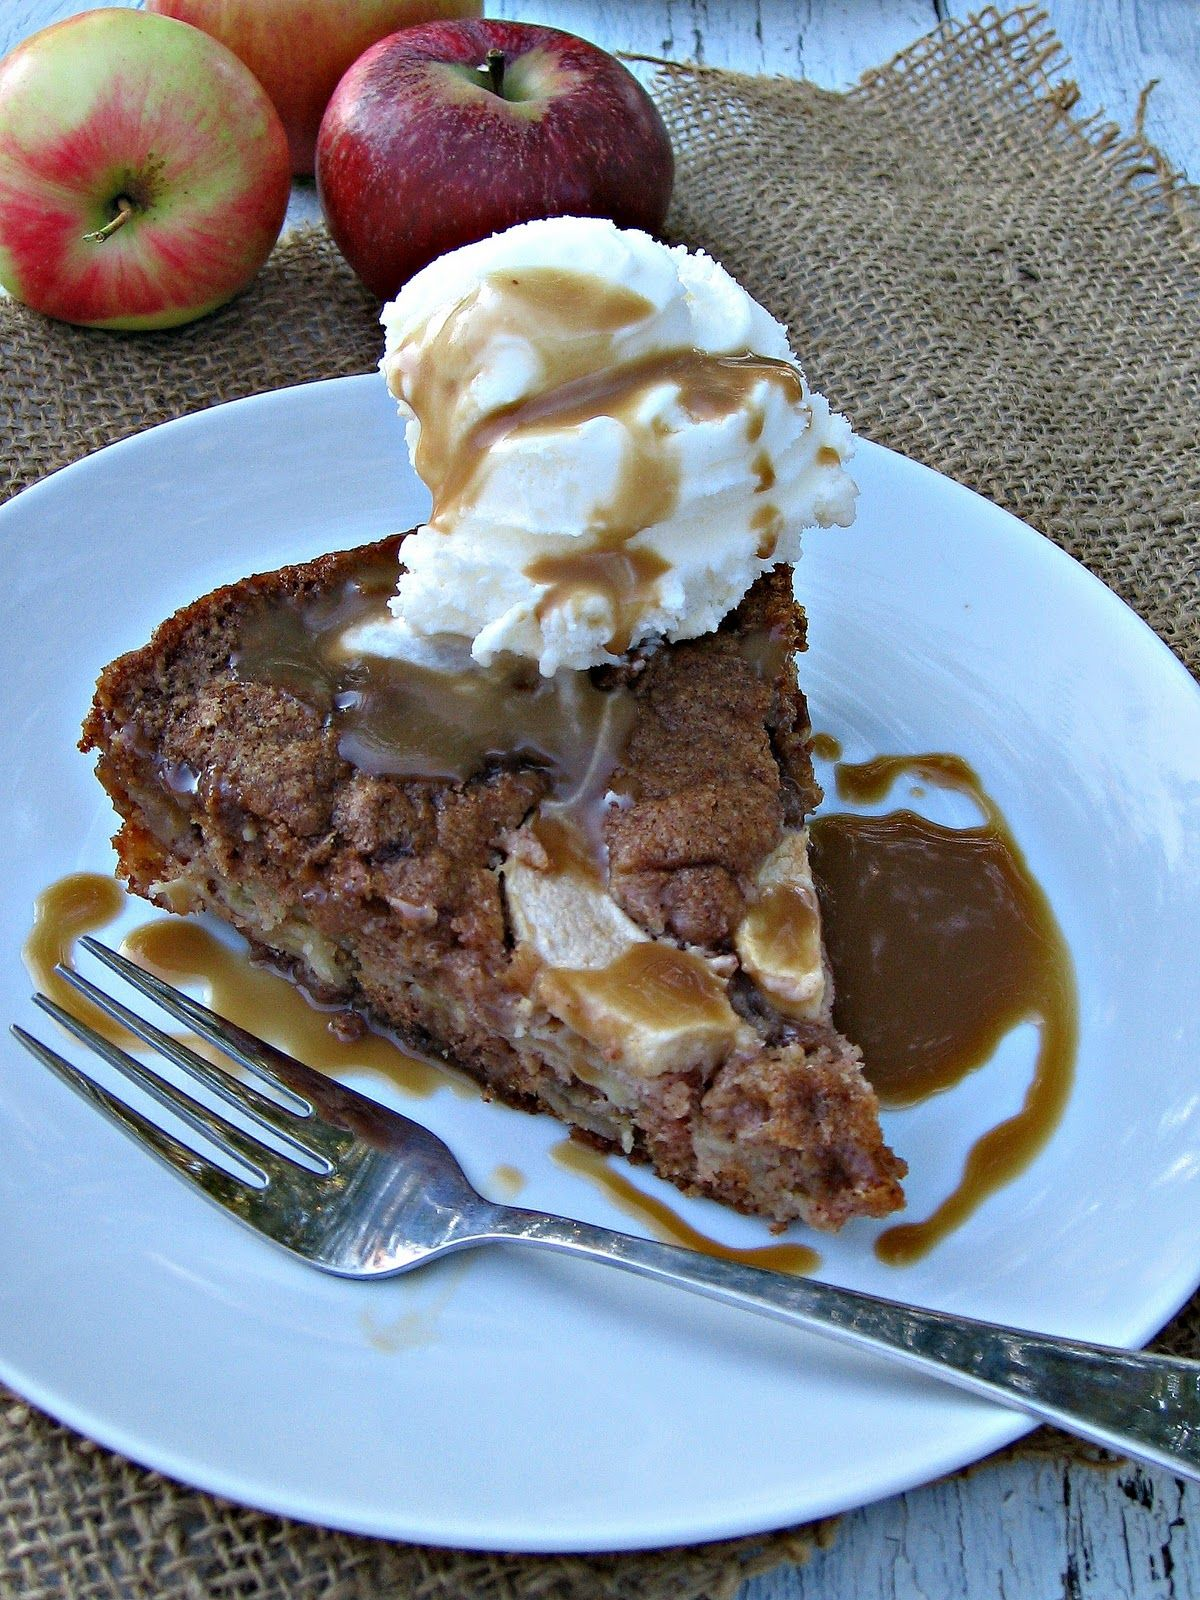 Spiced Apple Cake with Salted Caramel Sauce- think I just found the perfect dessert for a cool Fall evening.